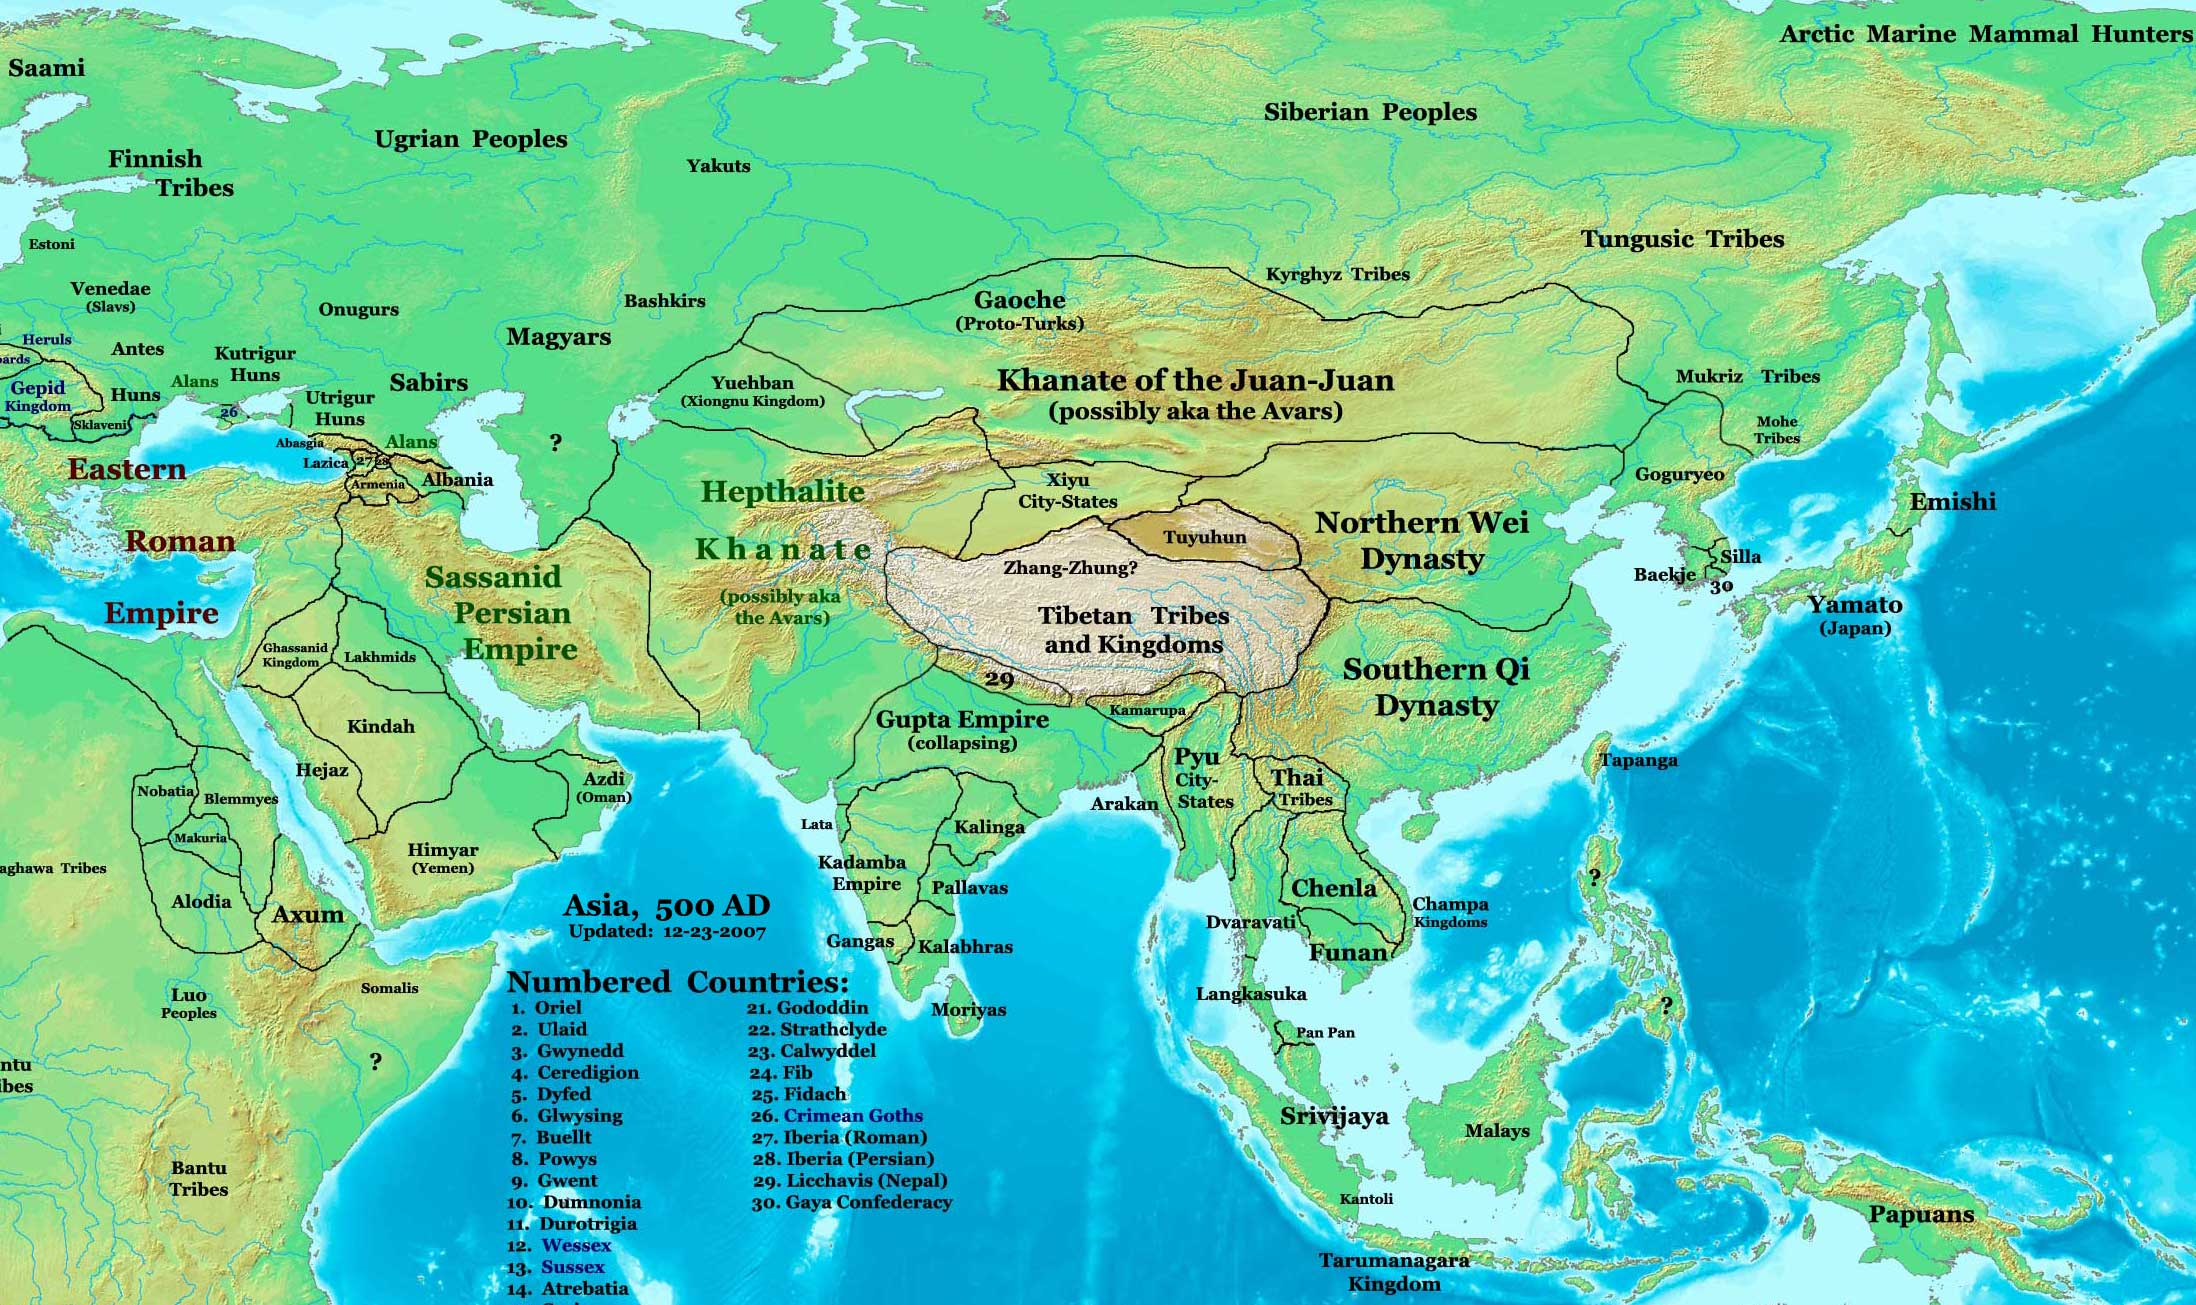 http://upload.wikimedia.org/wikipedia/commons/8/87/Asia_500ad.jpg